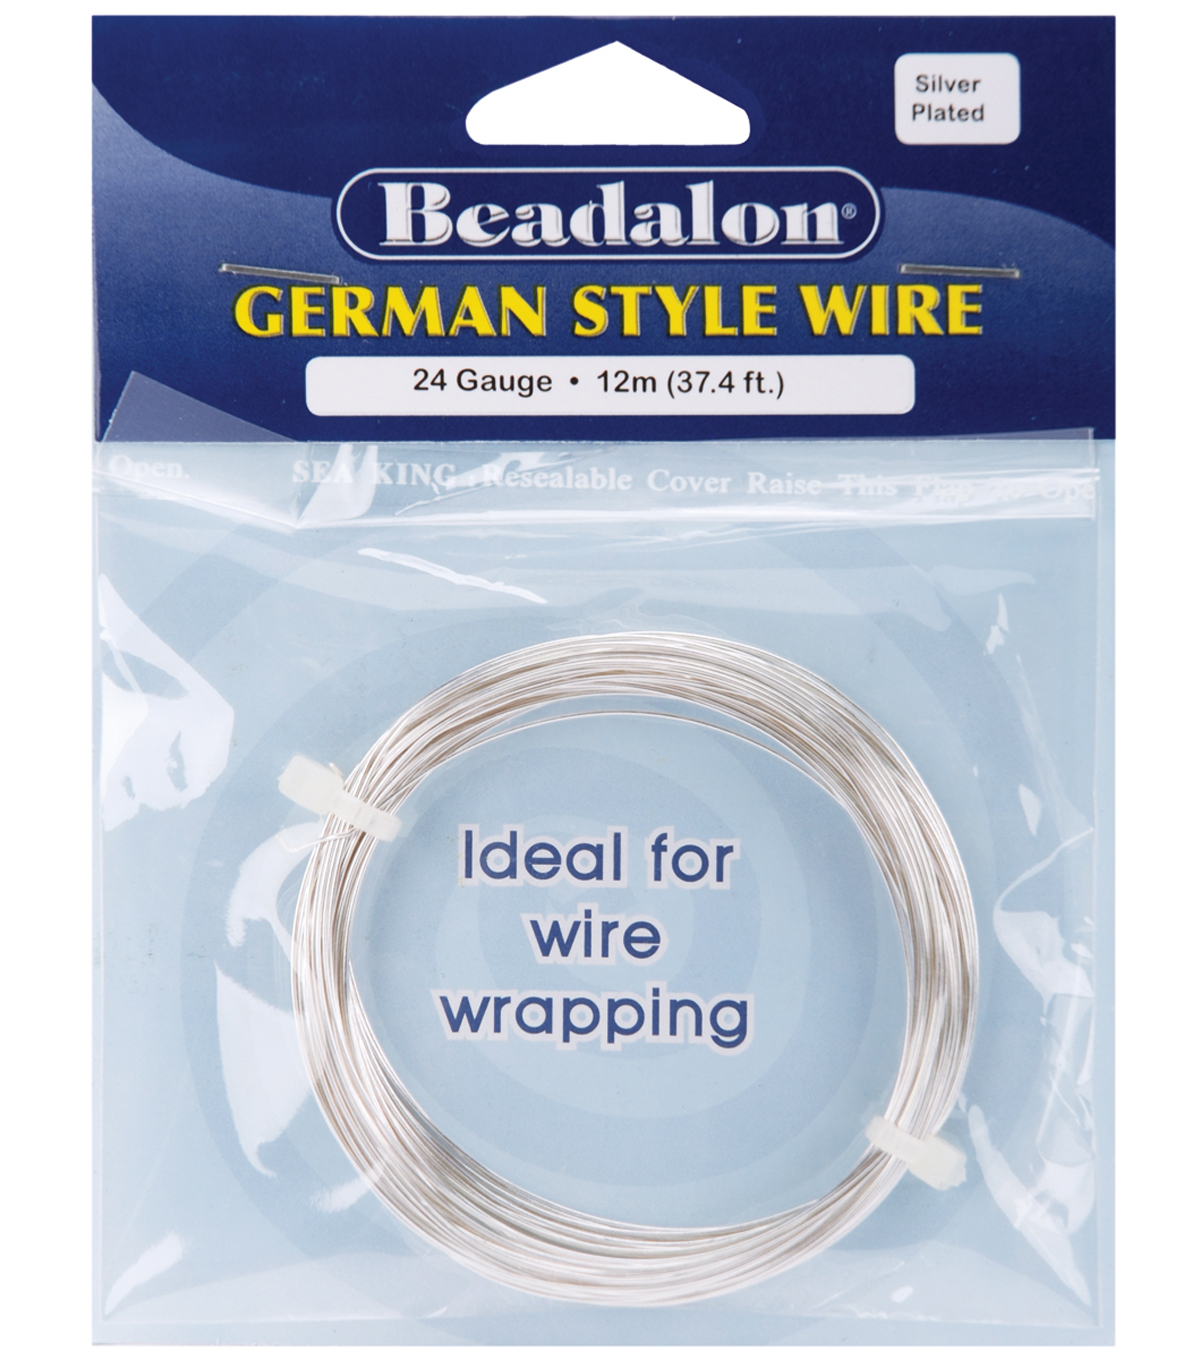 Beadalon German Style Round Wire 24 Gauge 37.4 Feet/Pkg-Silver